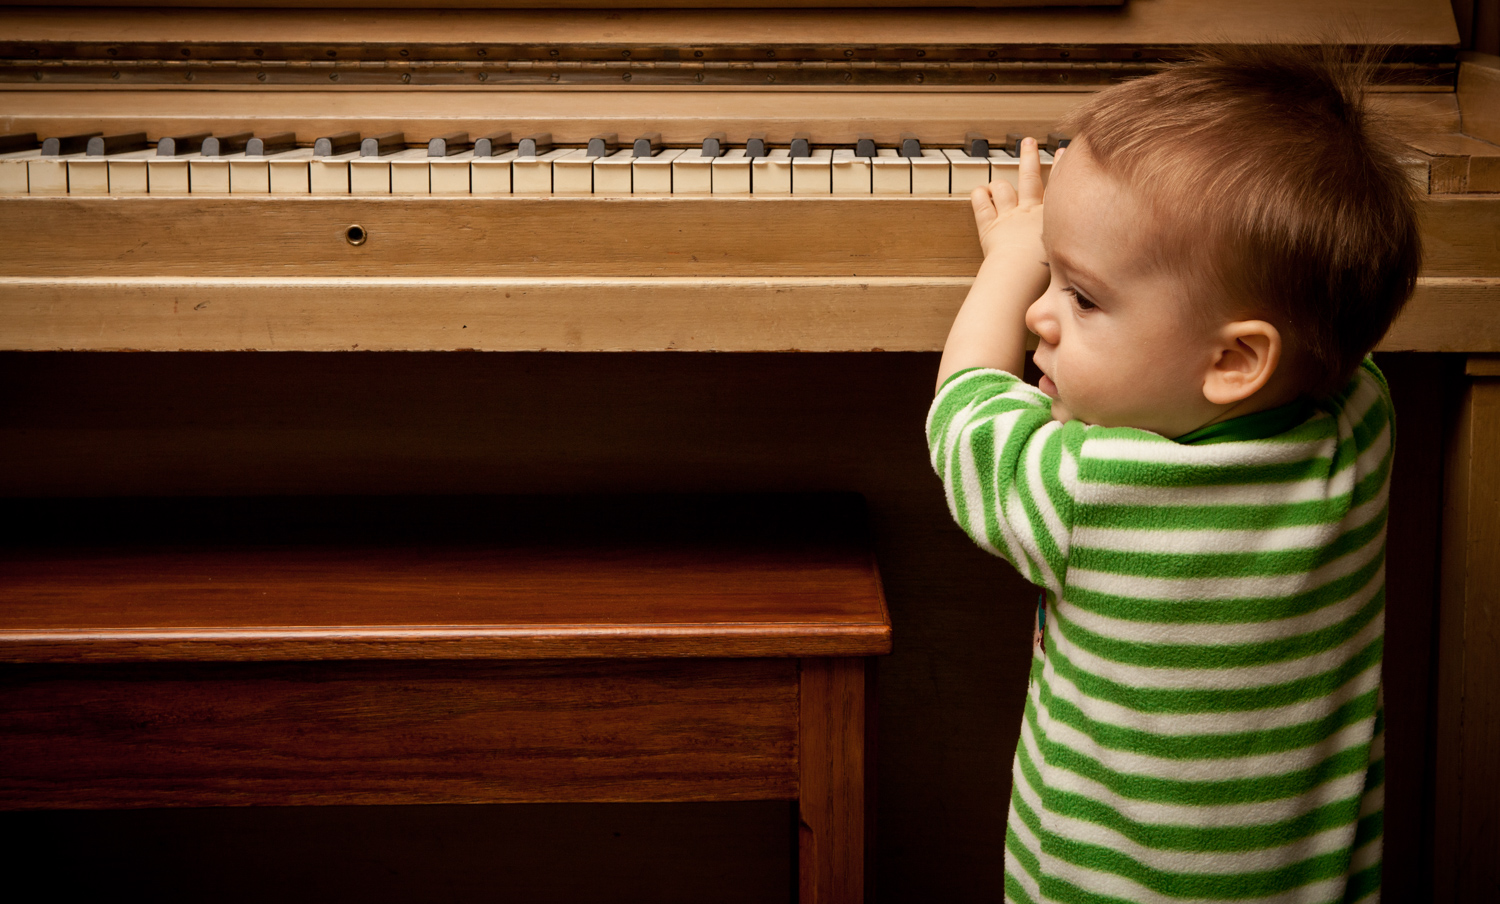 My son playing piano.